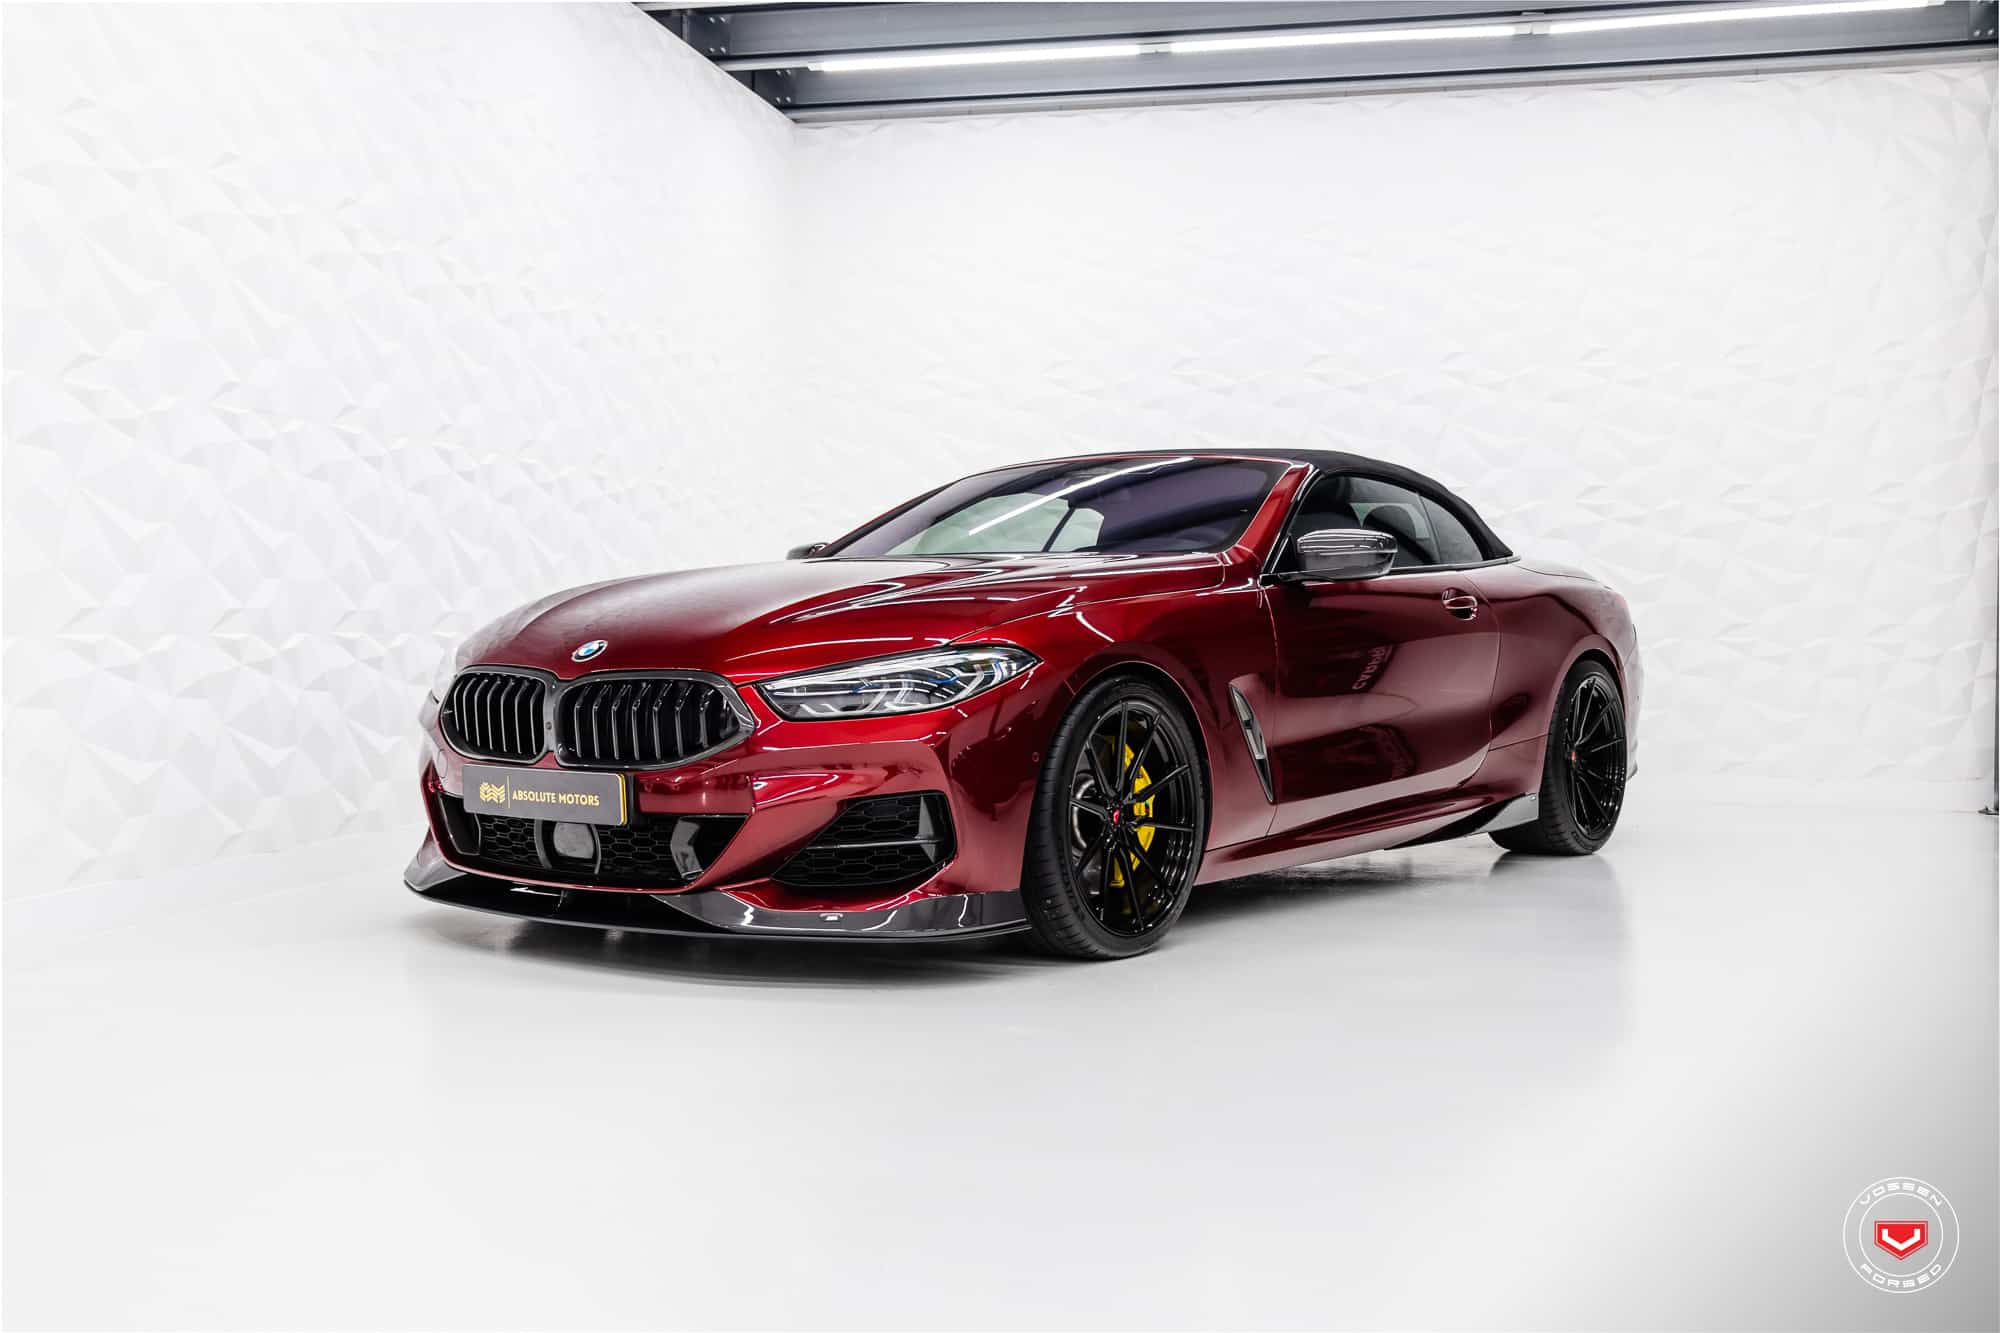 BMW M850i AC Schnitzer Body kit & Vossen Wheels